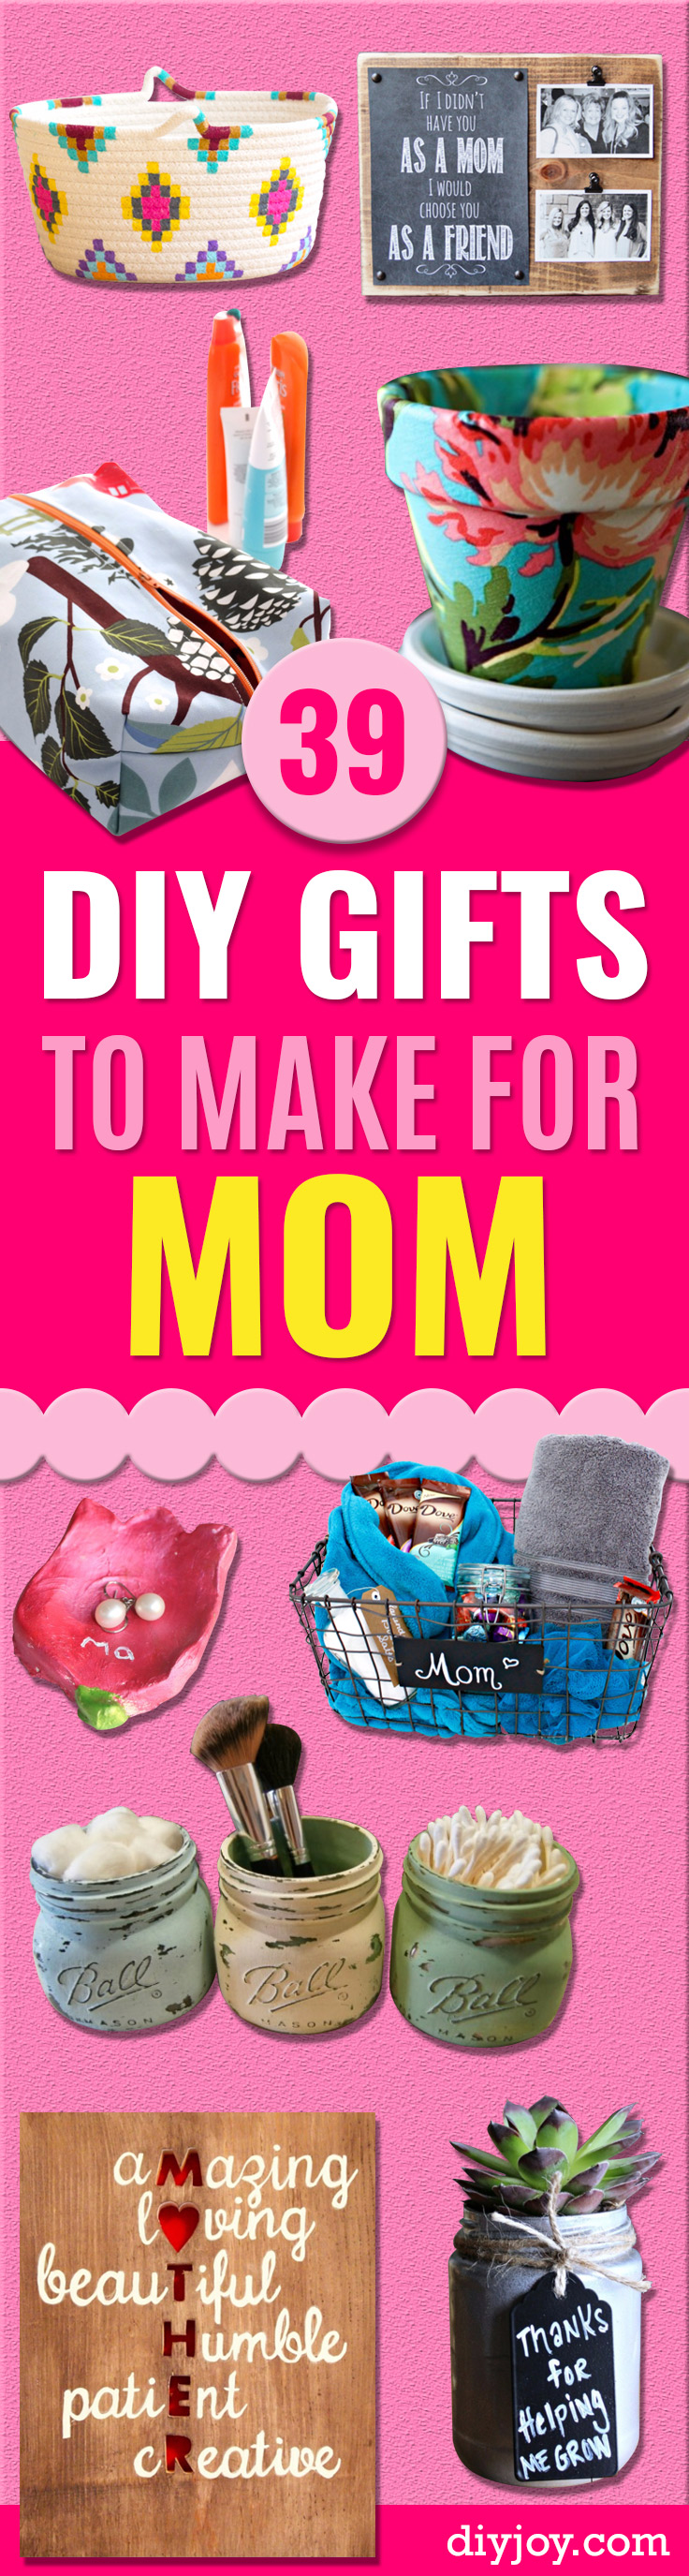 39 creative diy gifts to make for mom page 2 of 8 diy joy Christmas ideas for mothers